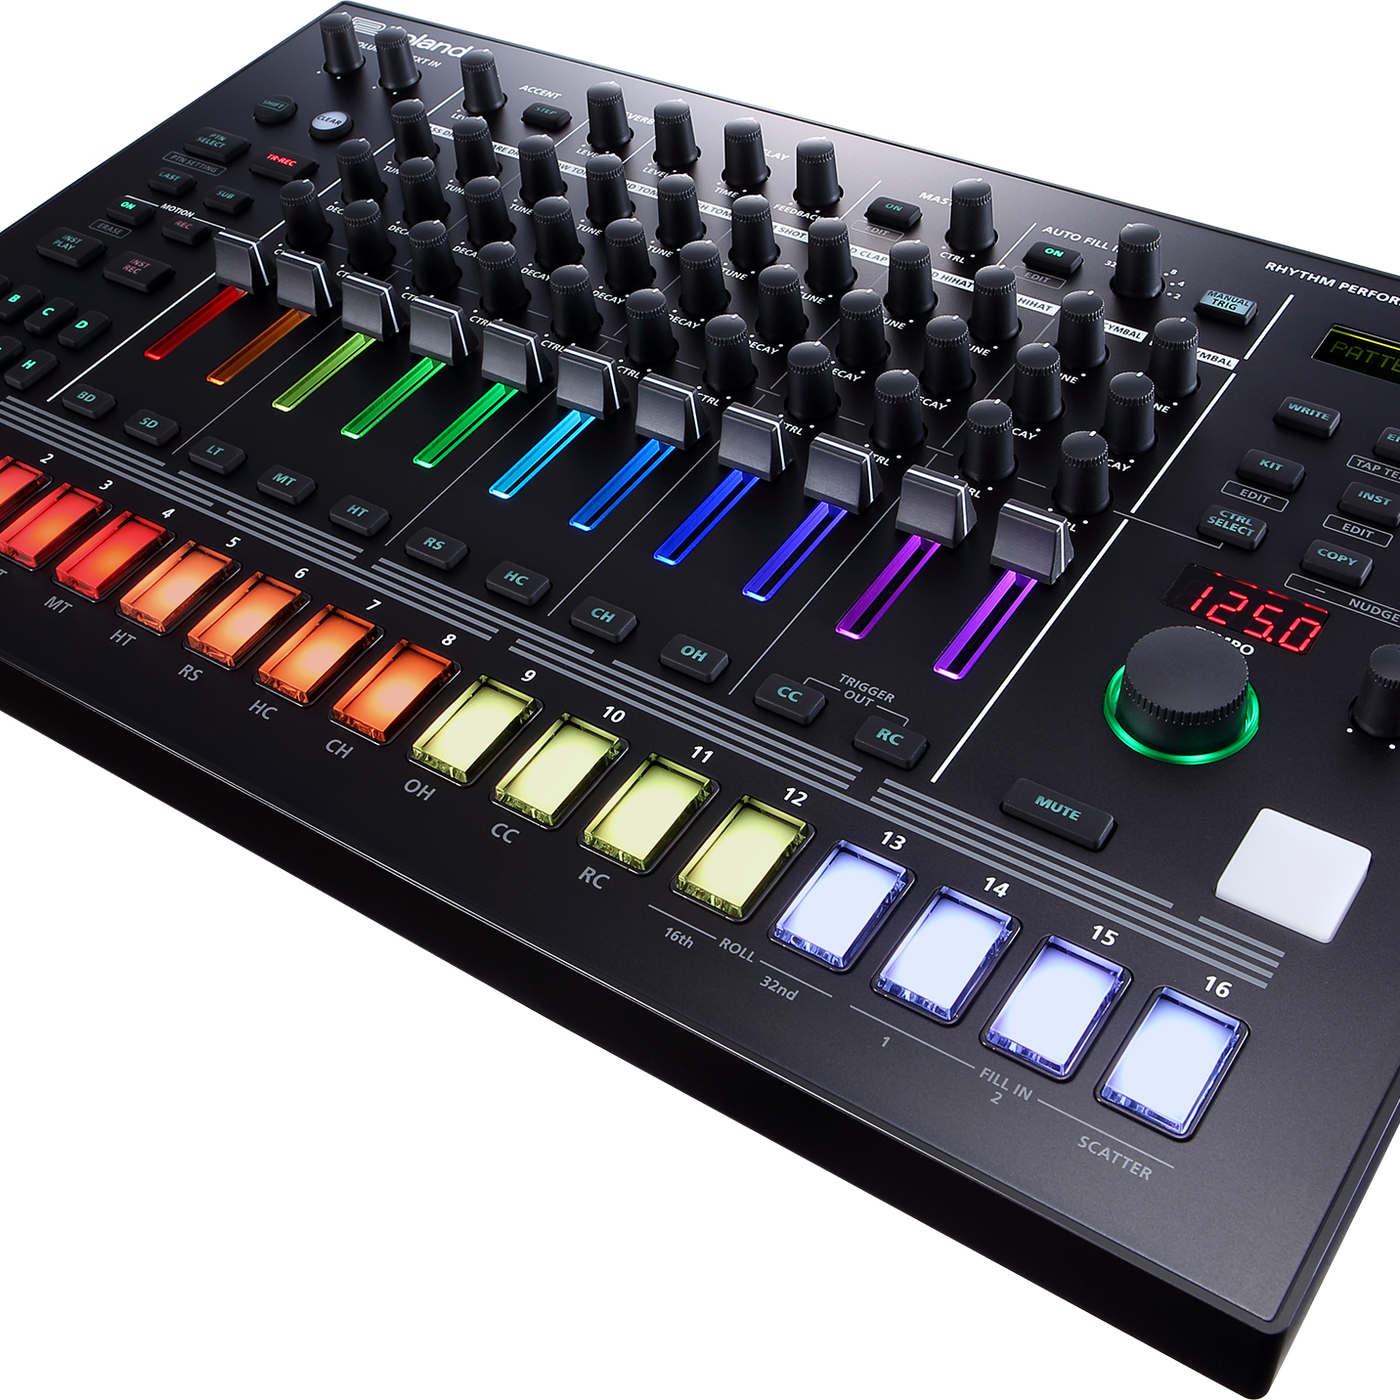 Roland's new rhythm performer is also five classic drum machines in